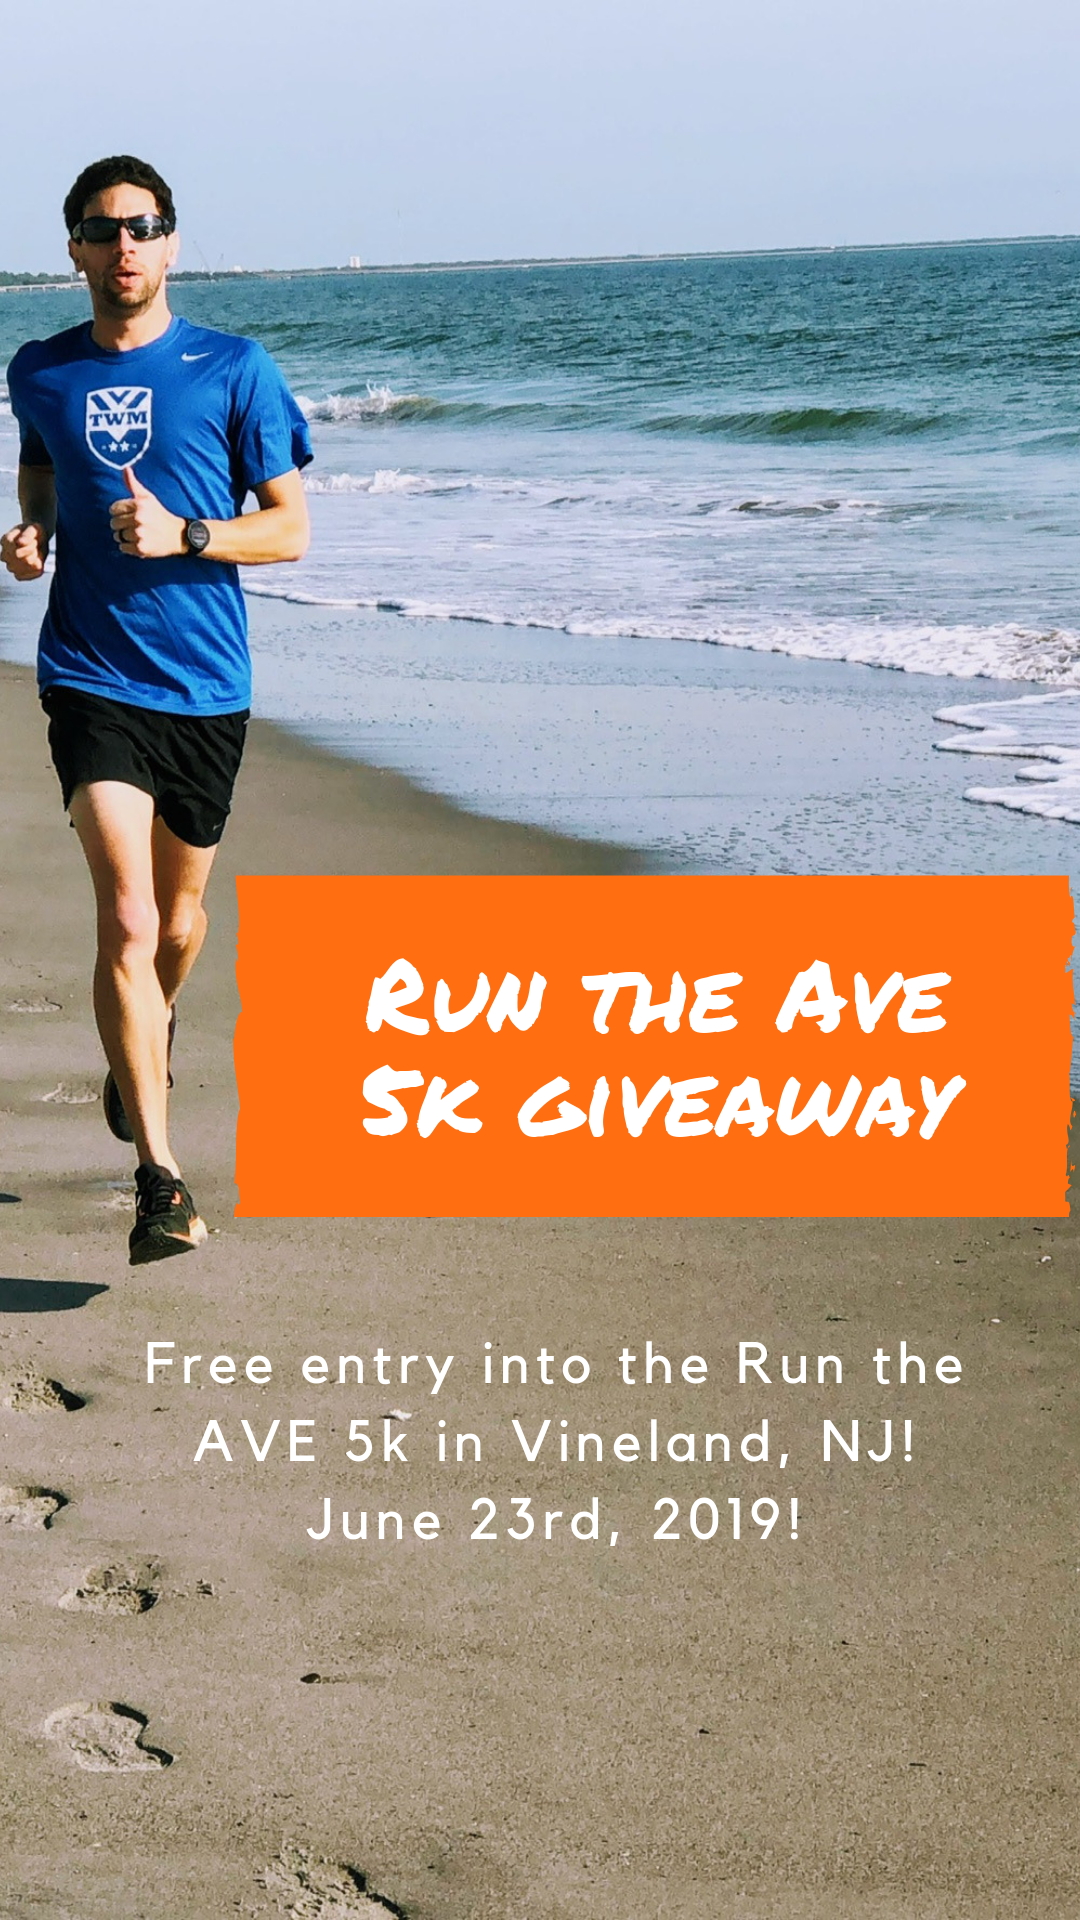 Register for a chance at a free entry into the Run the Ave 5k